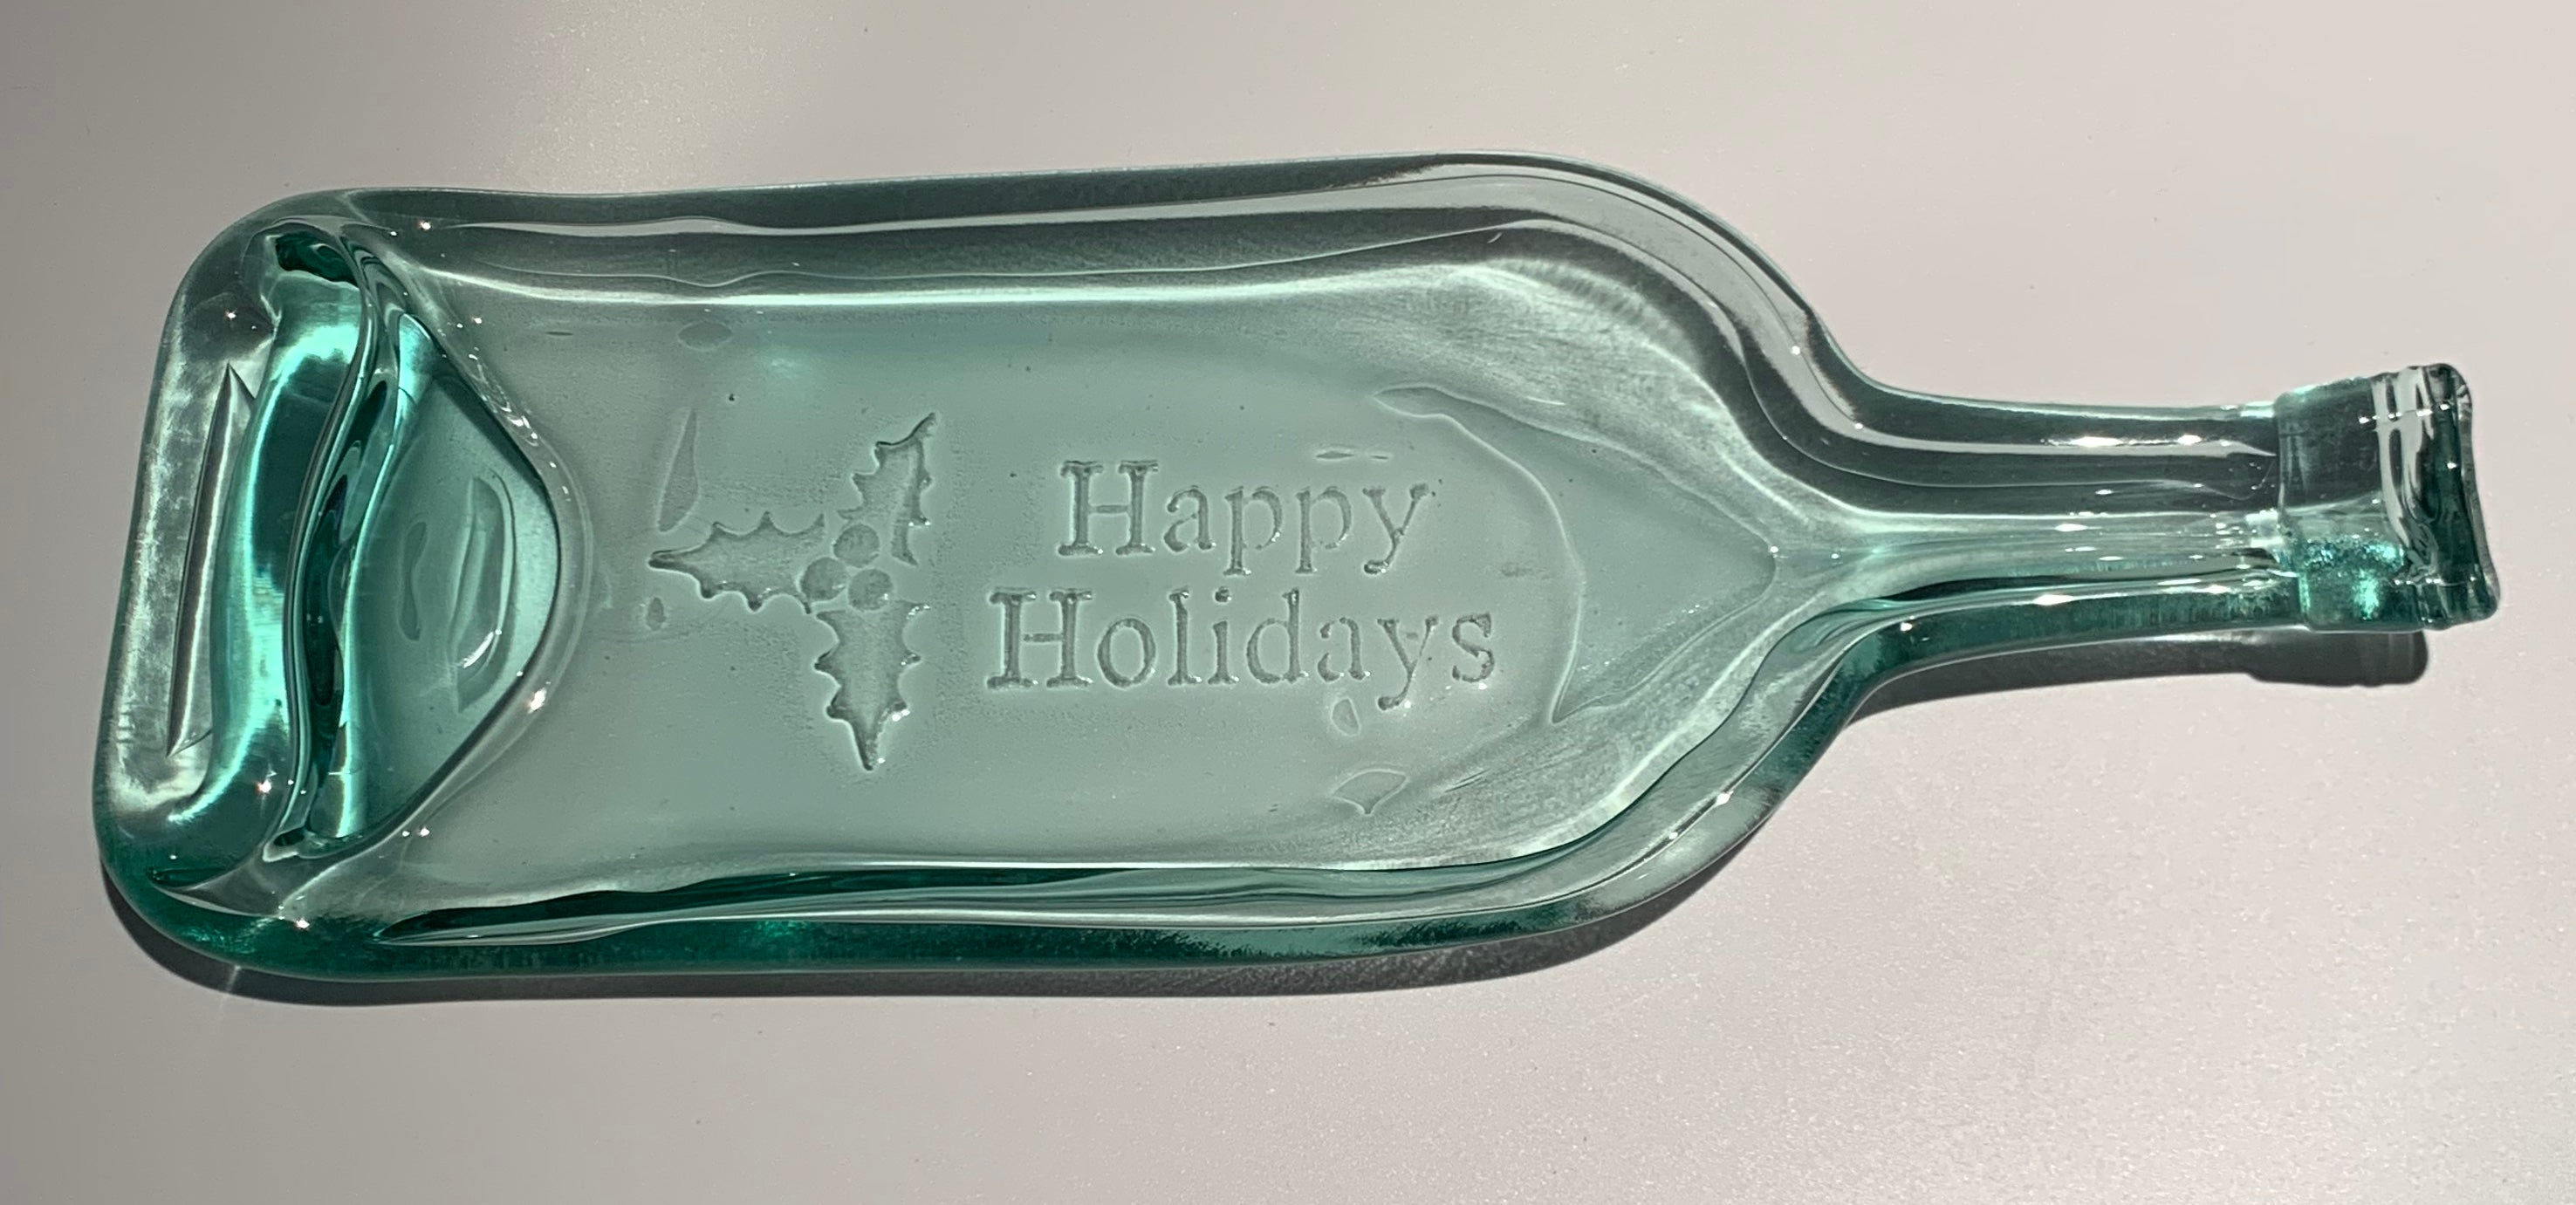 Happy Holidays Rimmed Plate